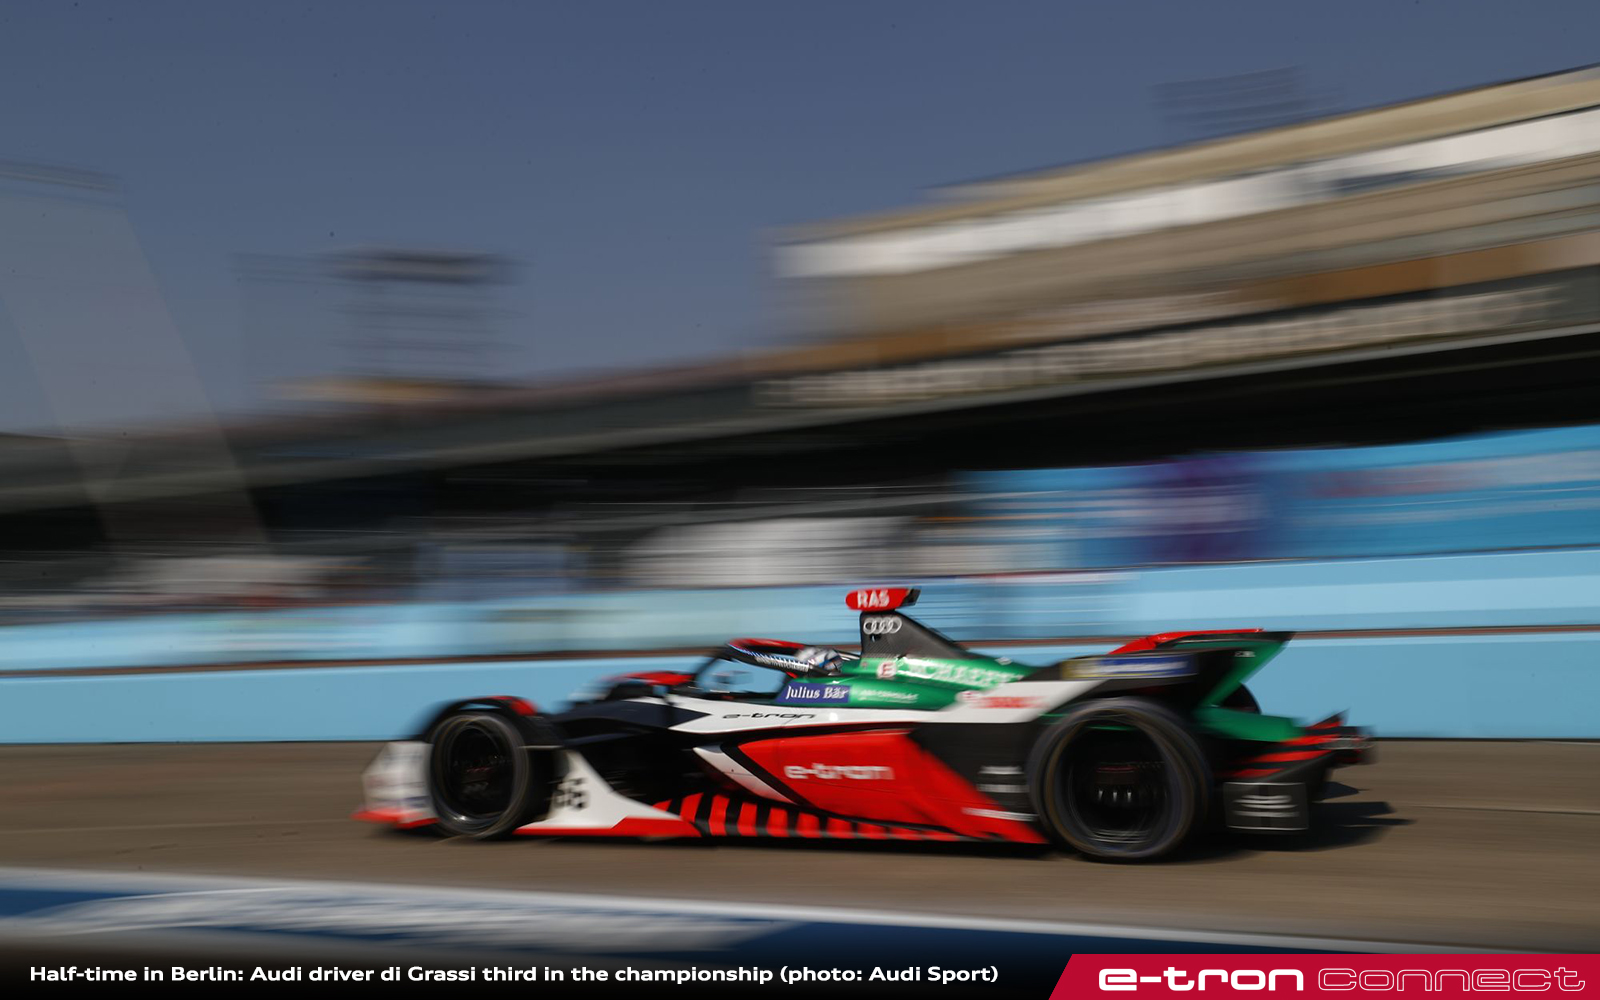 Half-Time in Berlin: Audi Driver di Grassi Third in the Championship